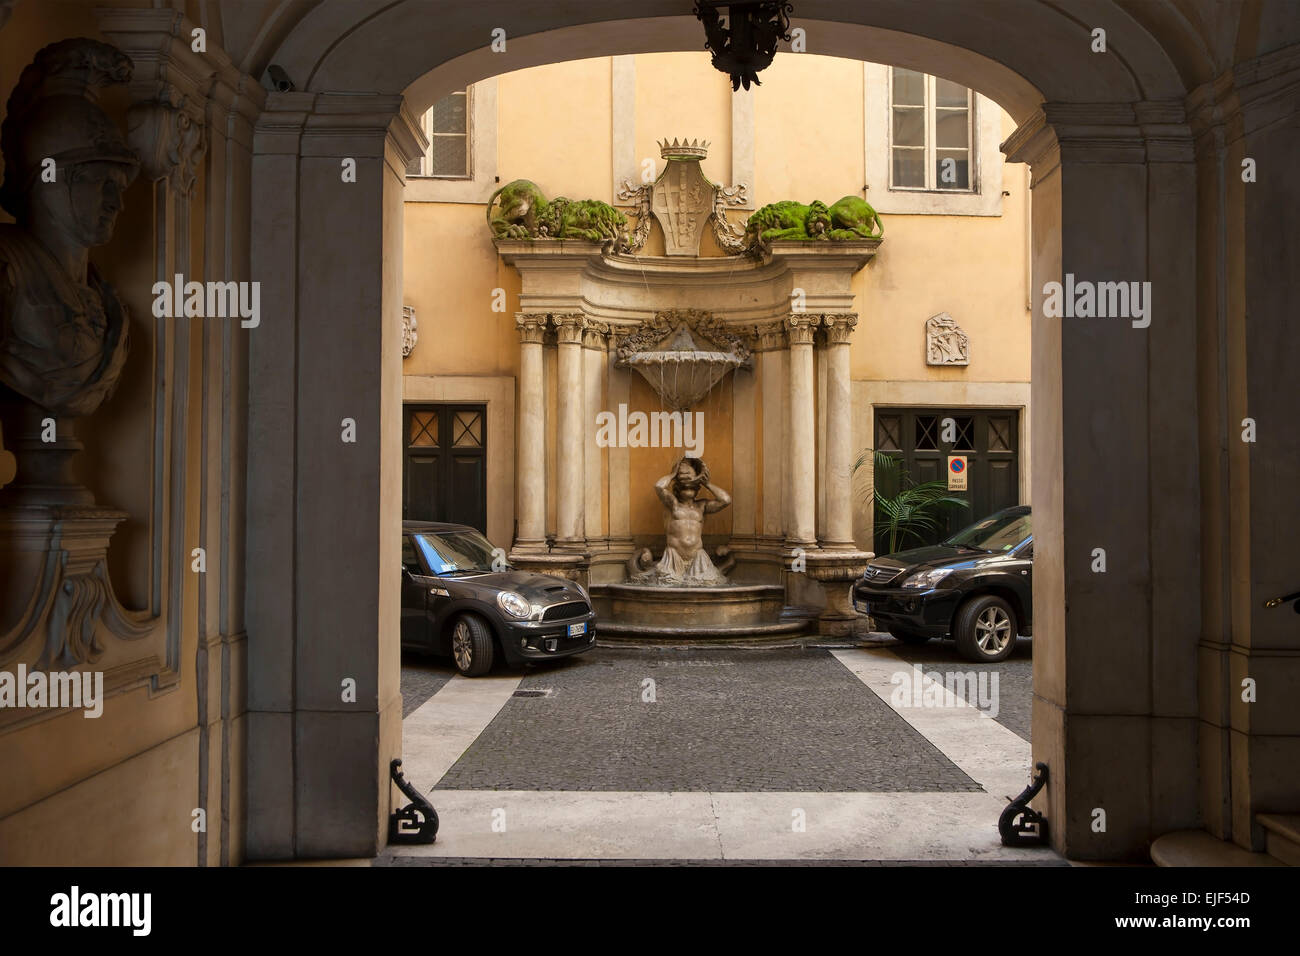 View of a small decorative backyard fountain in Rome Italy - Stock Image